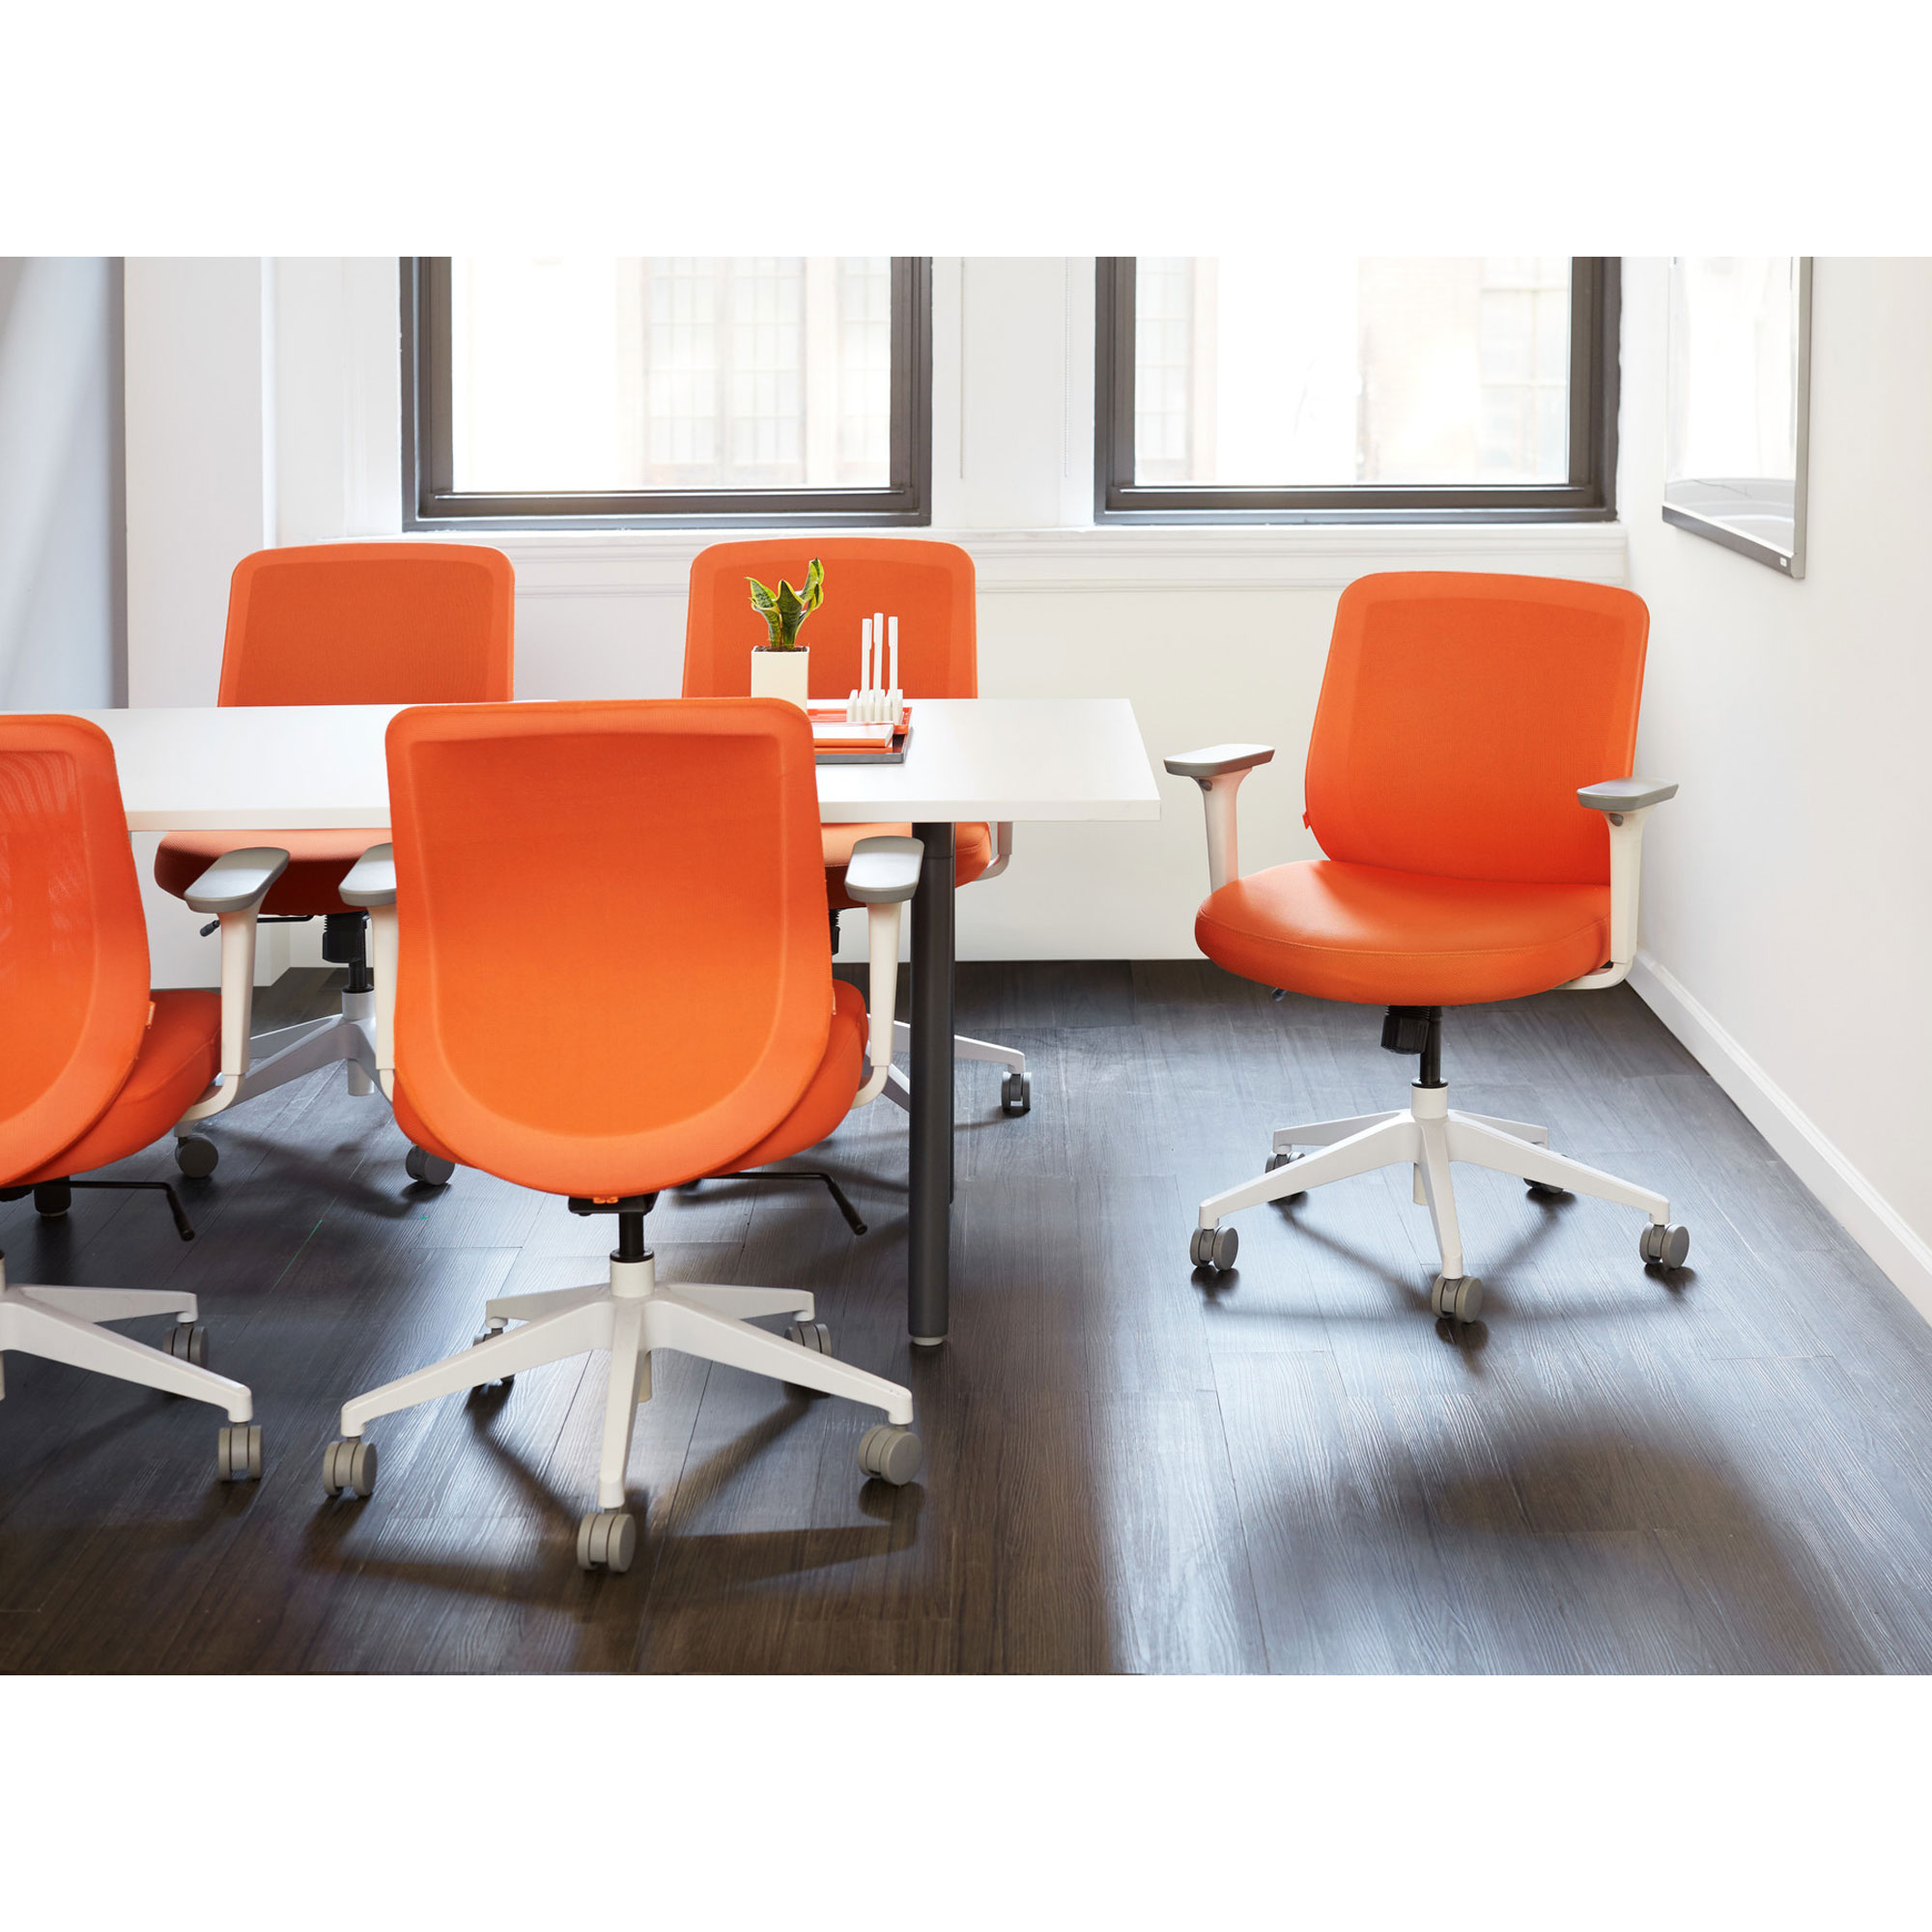 Office Chairs  Computer Desk   Home Office Chairs   Modern Office     Orange Max Task Chair  Mid Back  White Frame Orange hi res